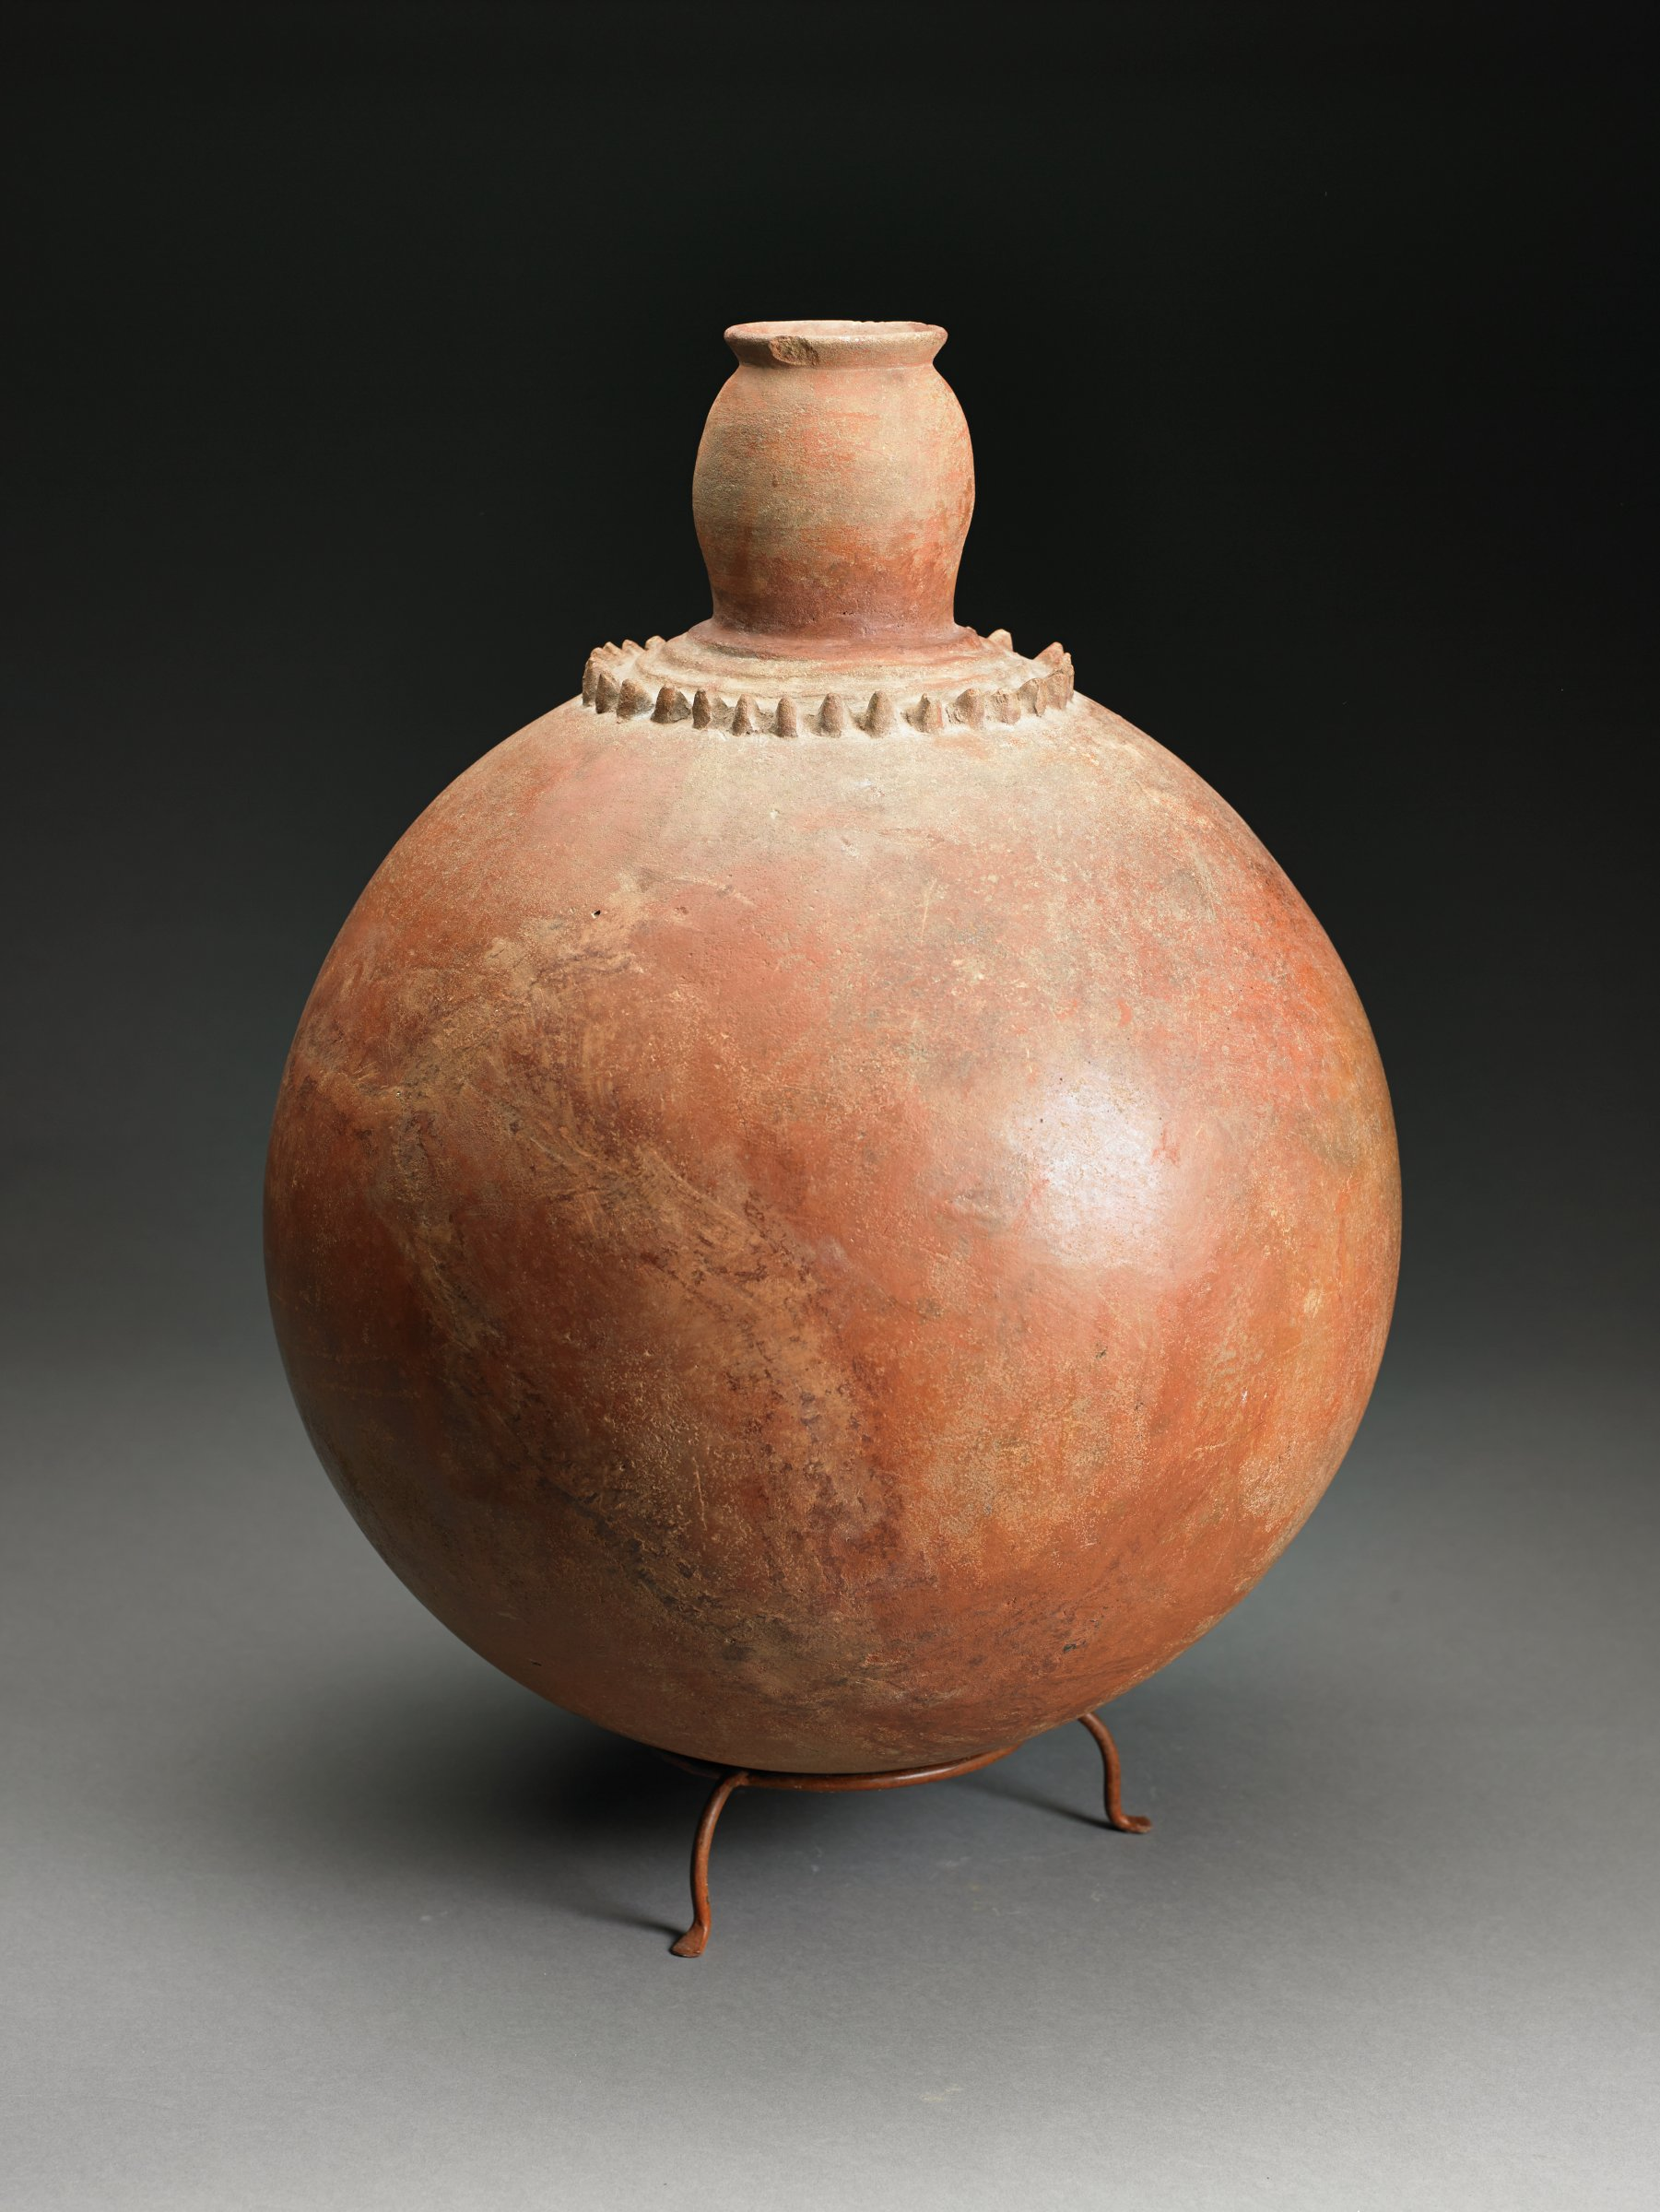 Spherical, brown vessel with black fire clouds has columnar, slightly convex neck with everted rim; shoulder has row of raised spiky points.